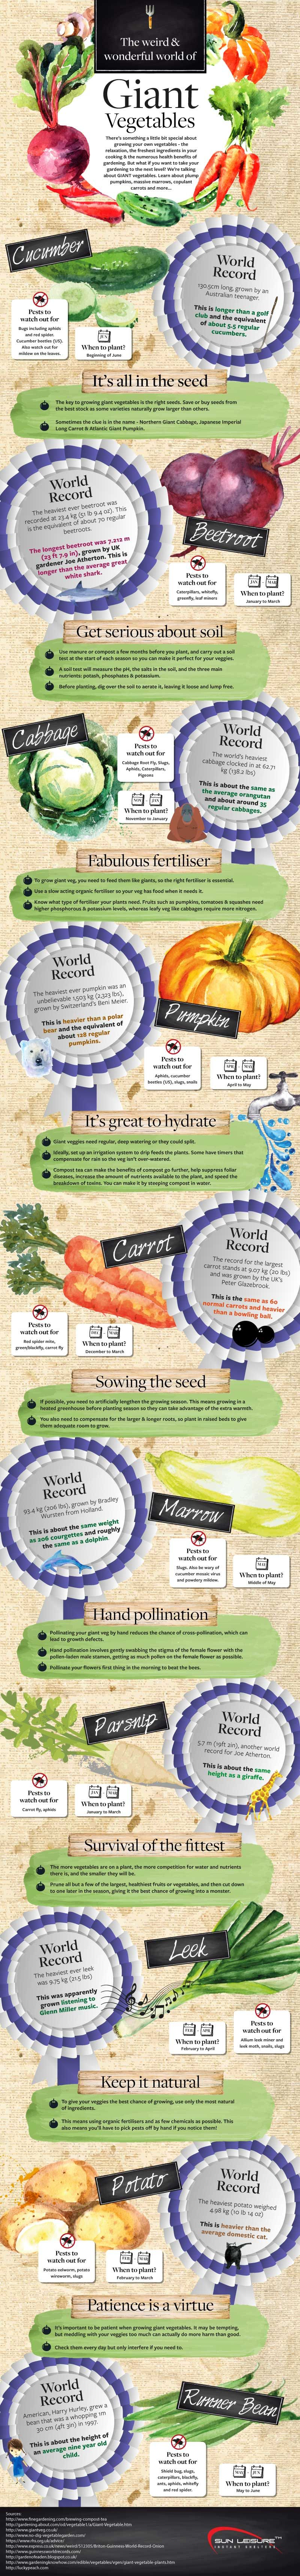 The Weird and Wonderful World Of Giant Vegetables #Infographic